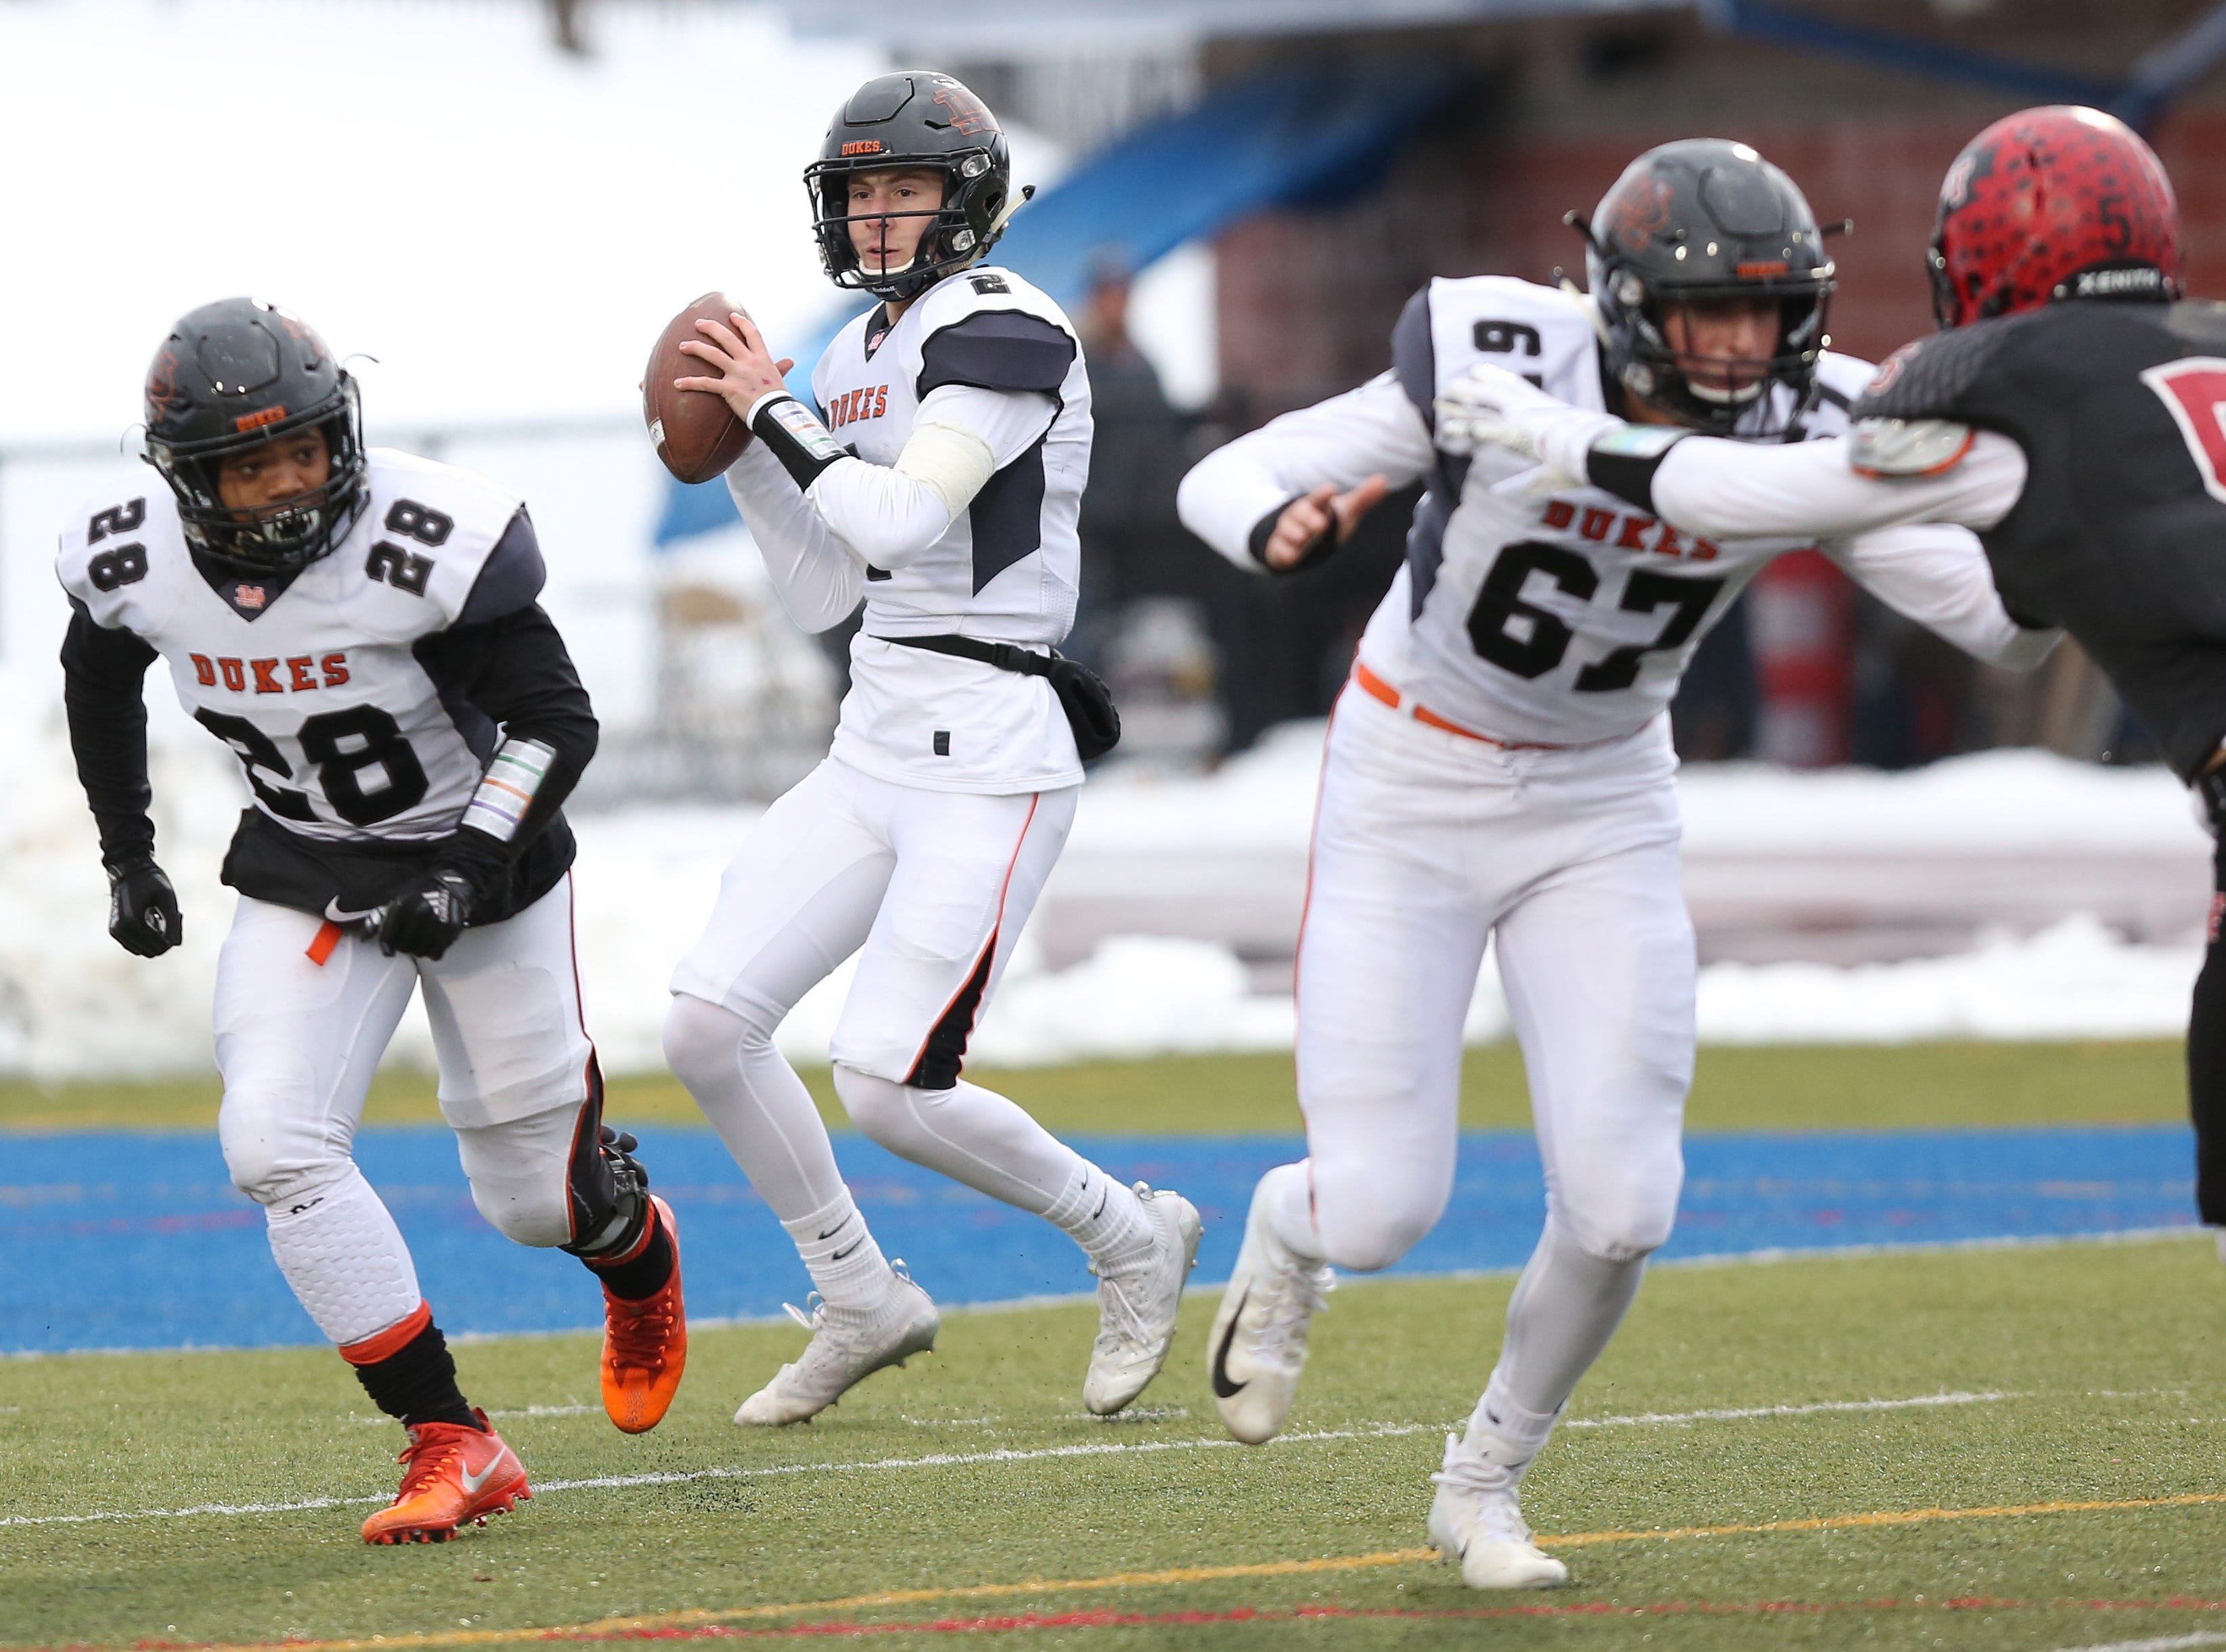 Glens Falls defeated Marlboro 48-28 in the state football Class B semifinal game at Middletown High School Nov. 17, 2018.